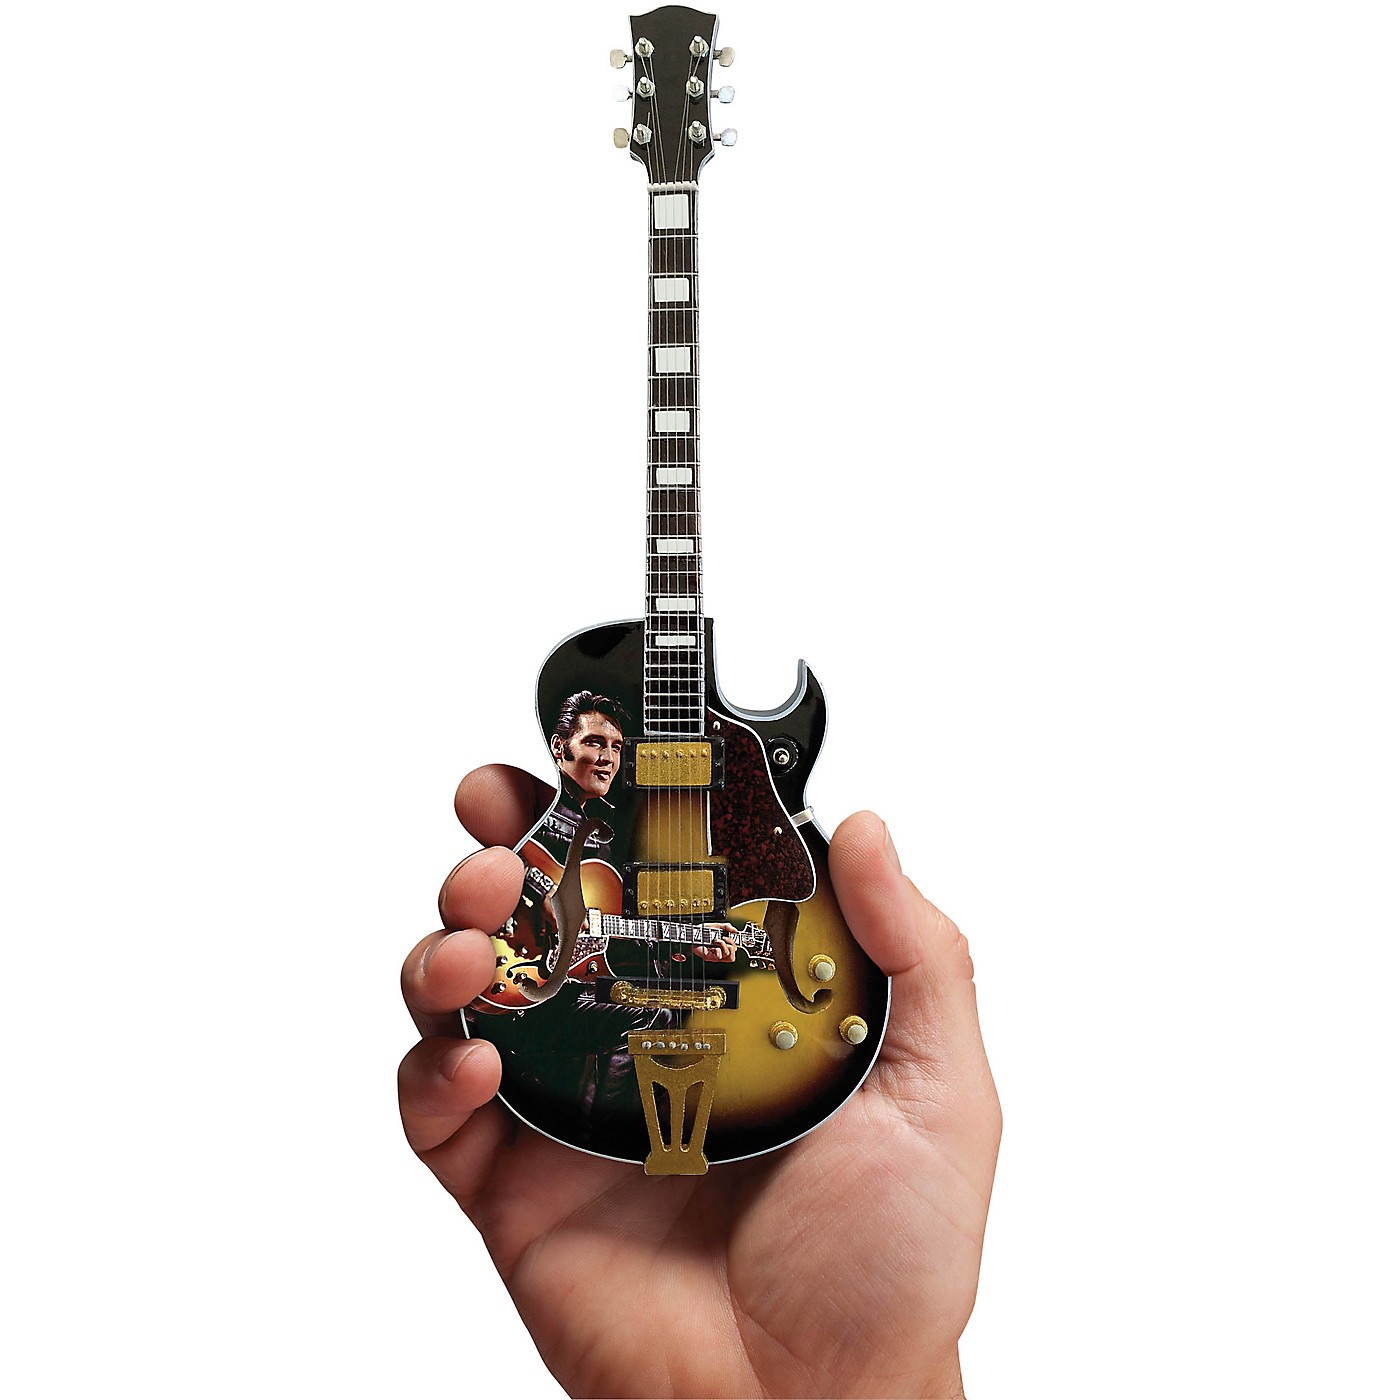 Axe Heaven Elvis Presley Signature '68 Special Hollow Body Model Officially Licensed Miniature Guitar Replica thumbnail